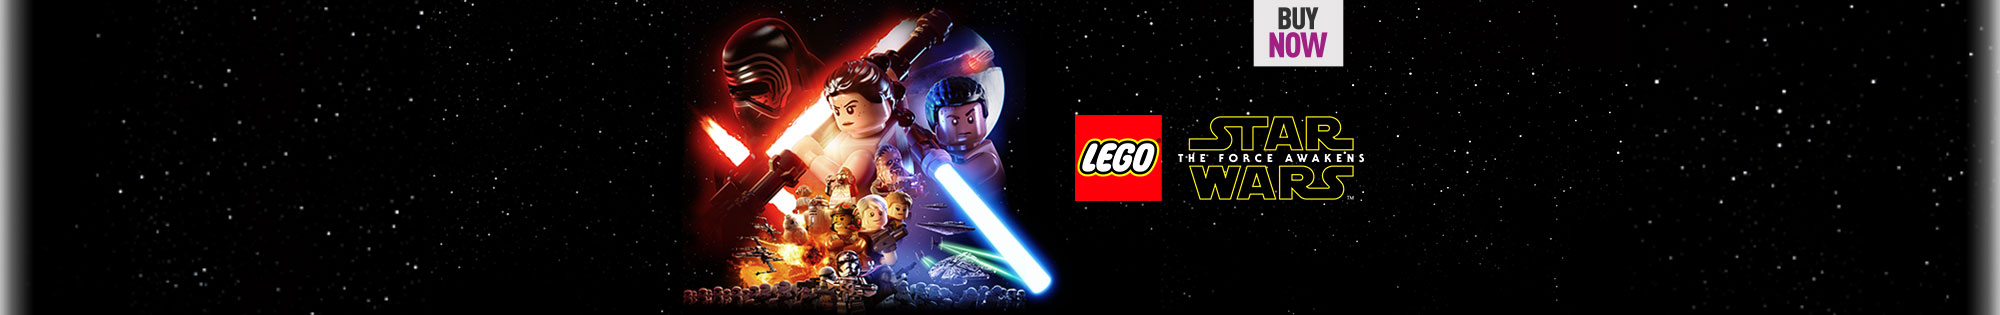 LEGO Star Wars The Force Awakens including Only At GAME Deluxe Edition on Xbox One, PS4, Wii U, 3DS, PC, Xbox 360 and PS3 - Buy Now at GAME.co.uk